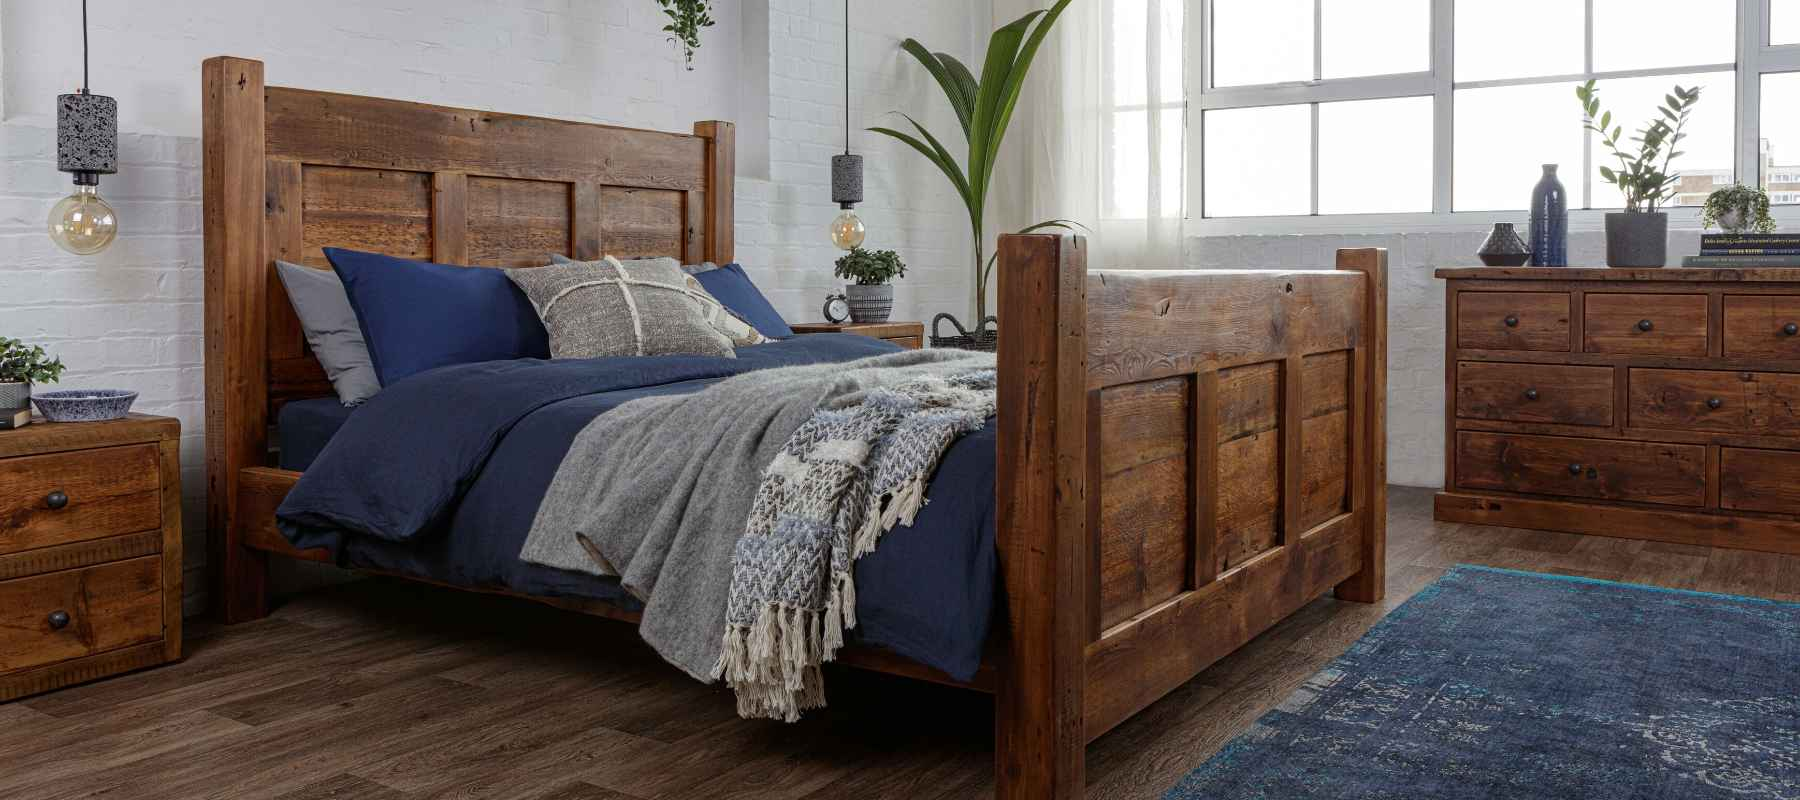 Reclaimed wood bed frame with blue bed covers and blue rug